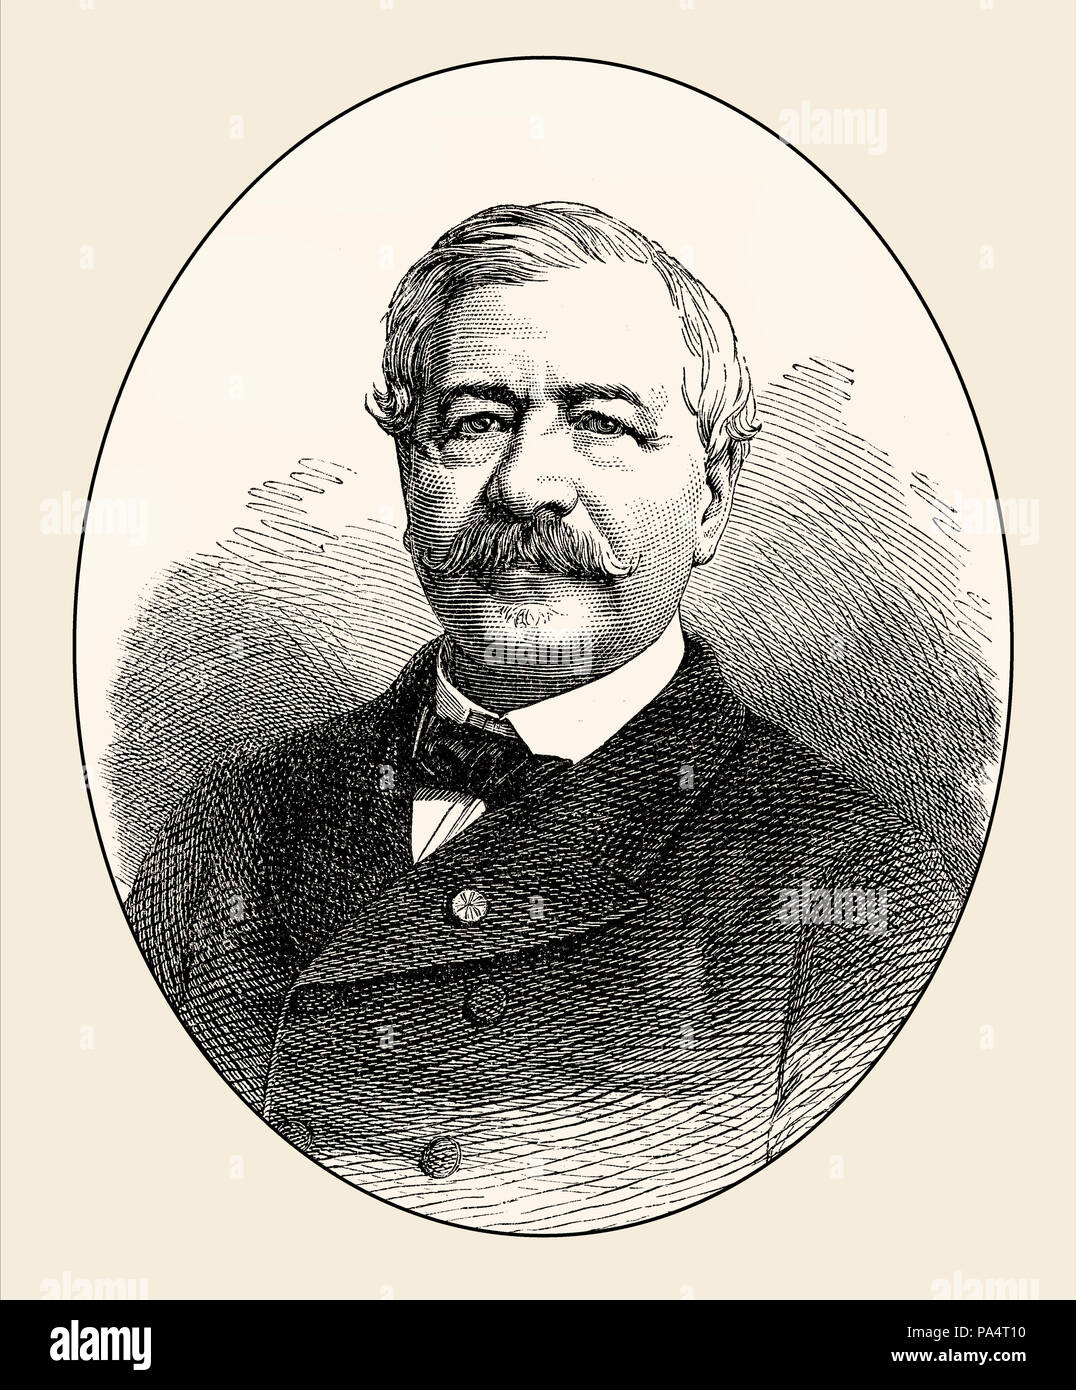 Ferdinand Marie Vicomte de Lesseps, 1805 - 1894, a French diplomat and initiator of the Suez Canal, From British Battles on Land and Sea, by James Gra - Stock Image